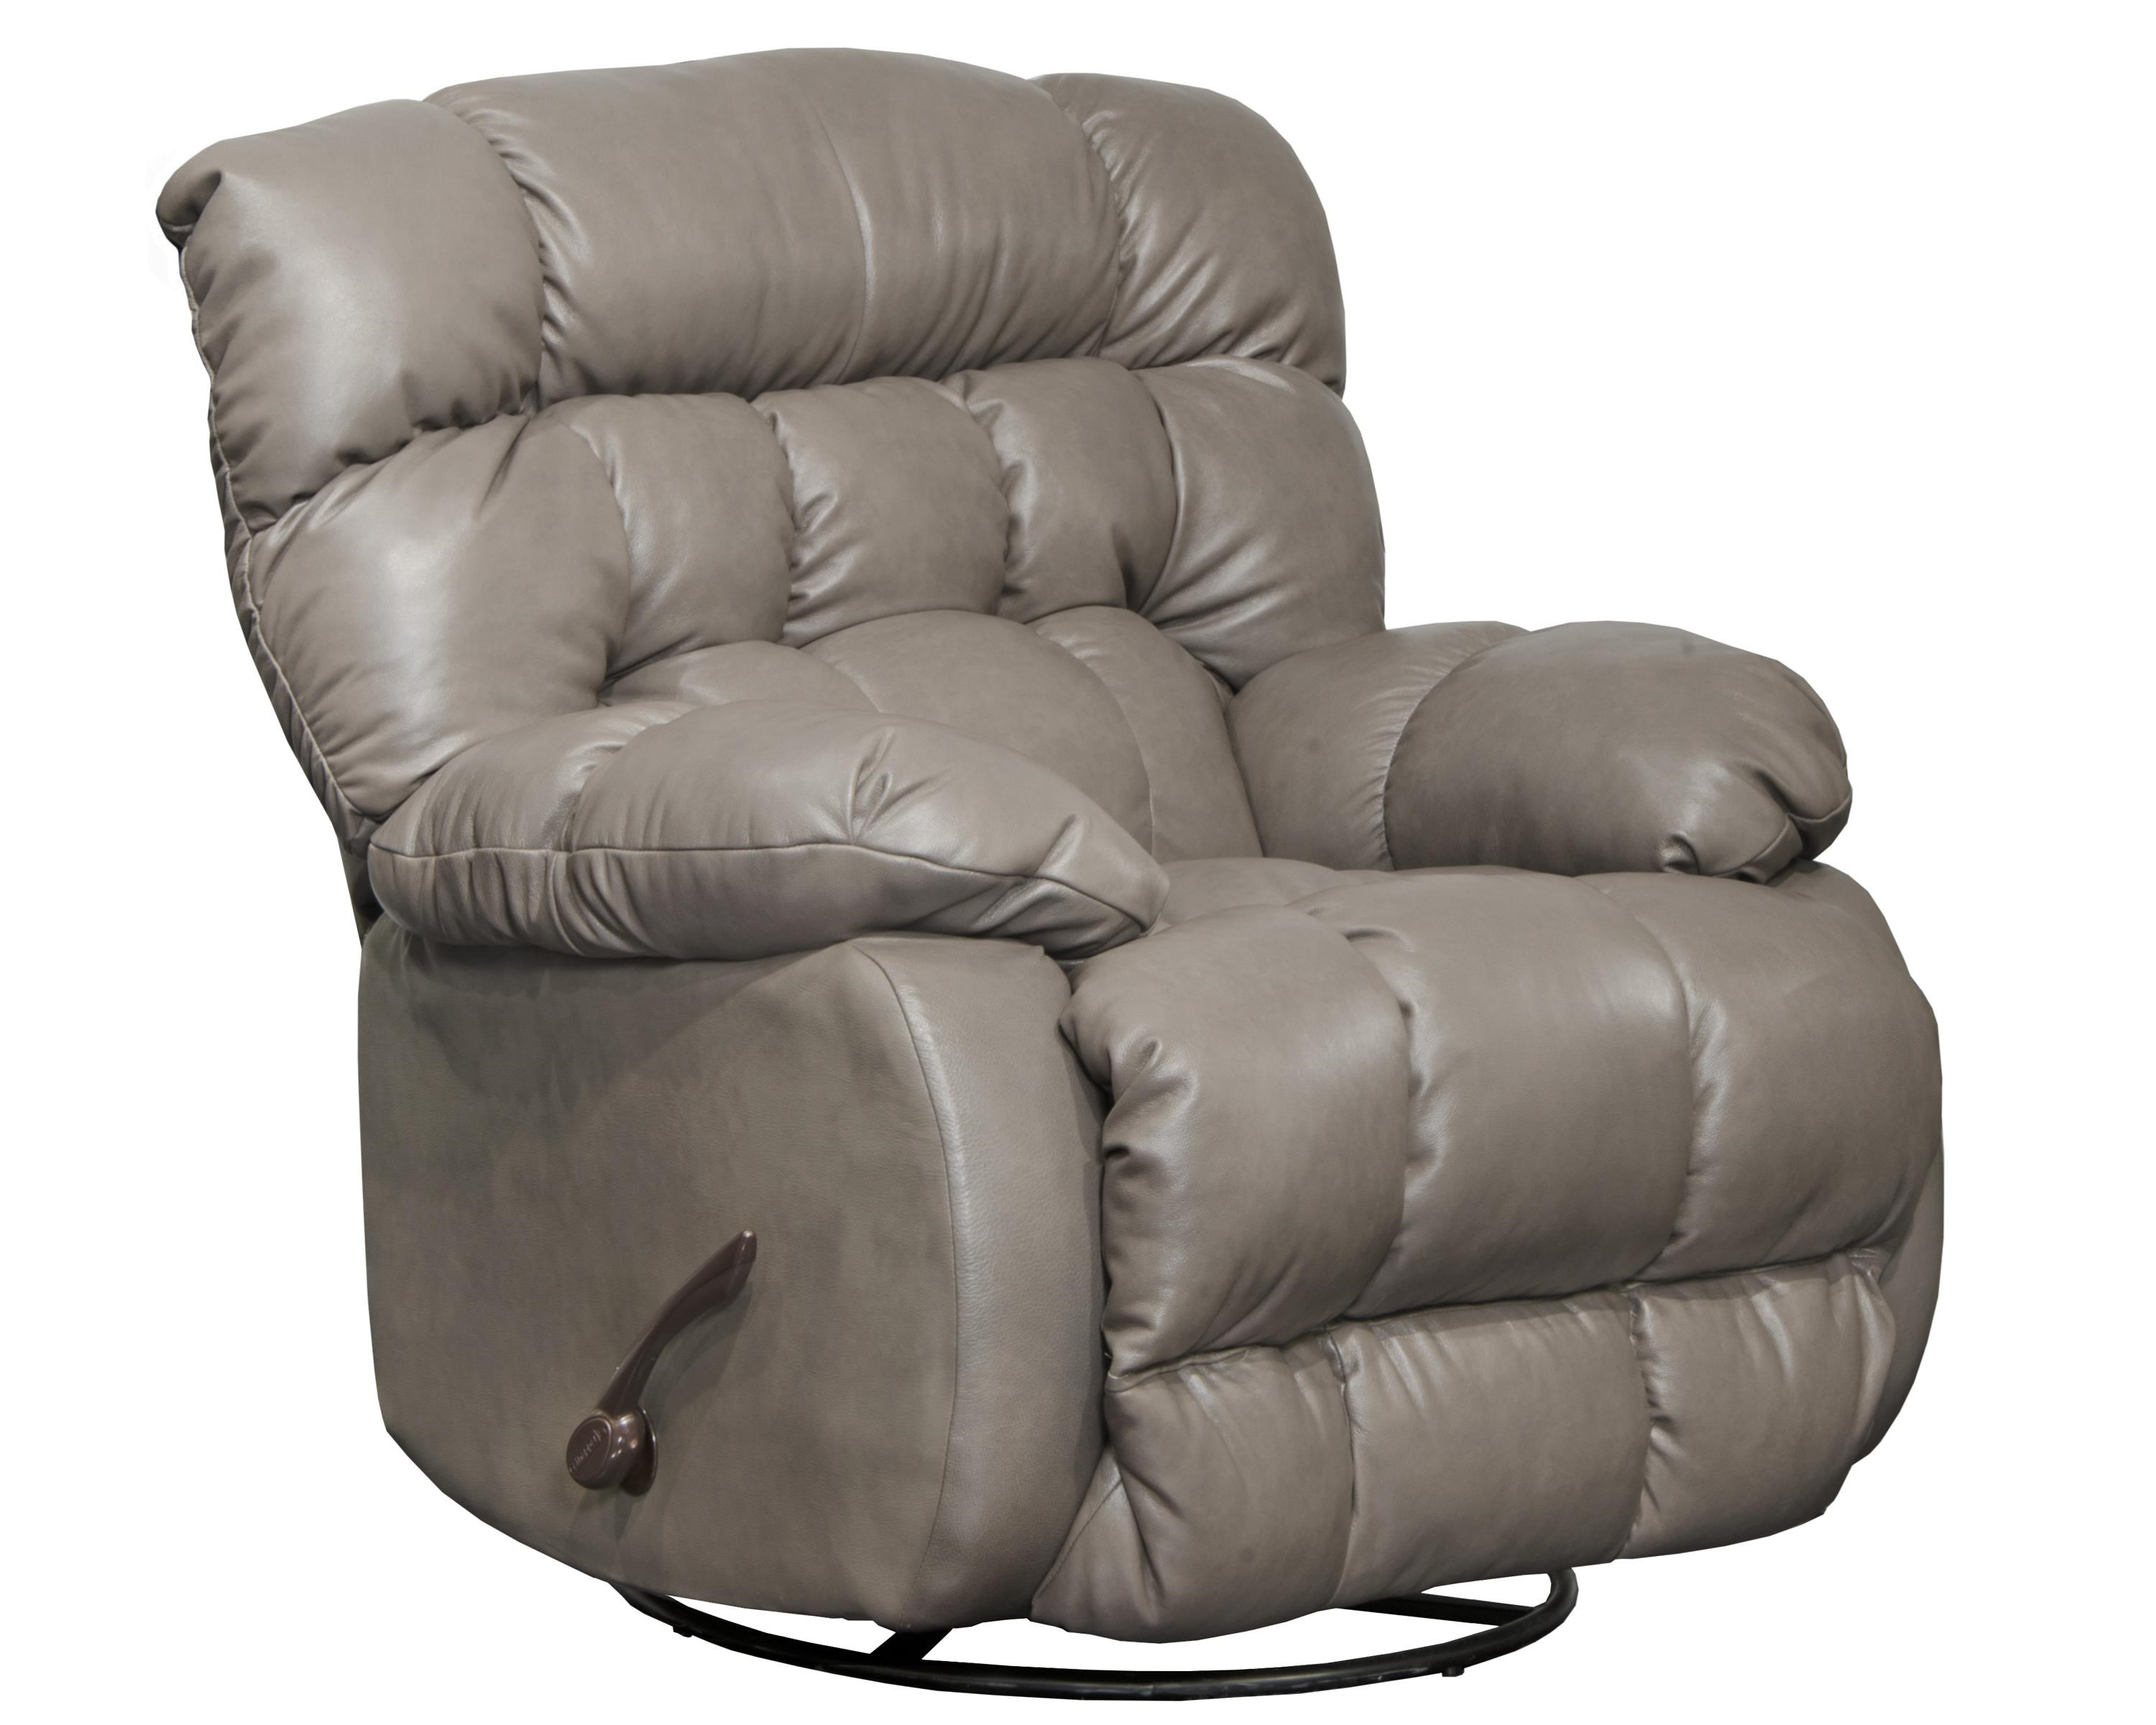 Catnapper 4213 Leather Swivel Recliner - Item Number: 4213 Grey